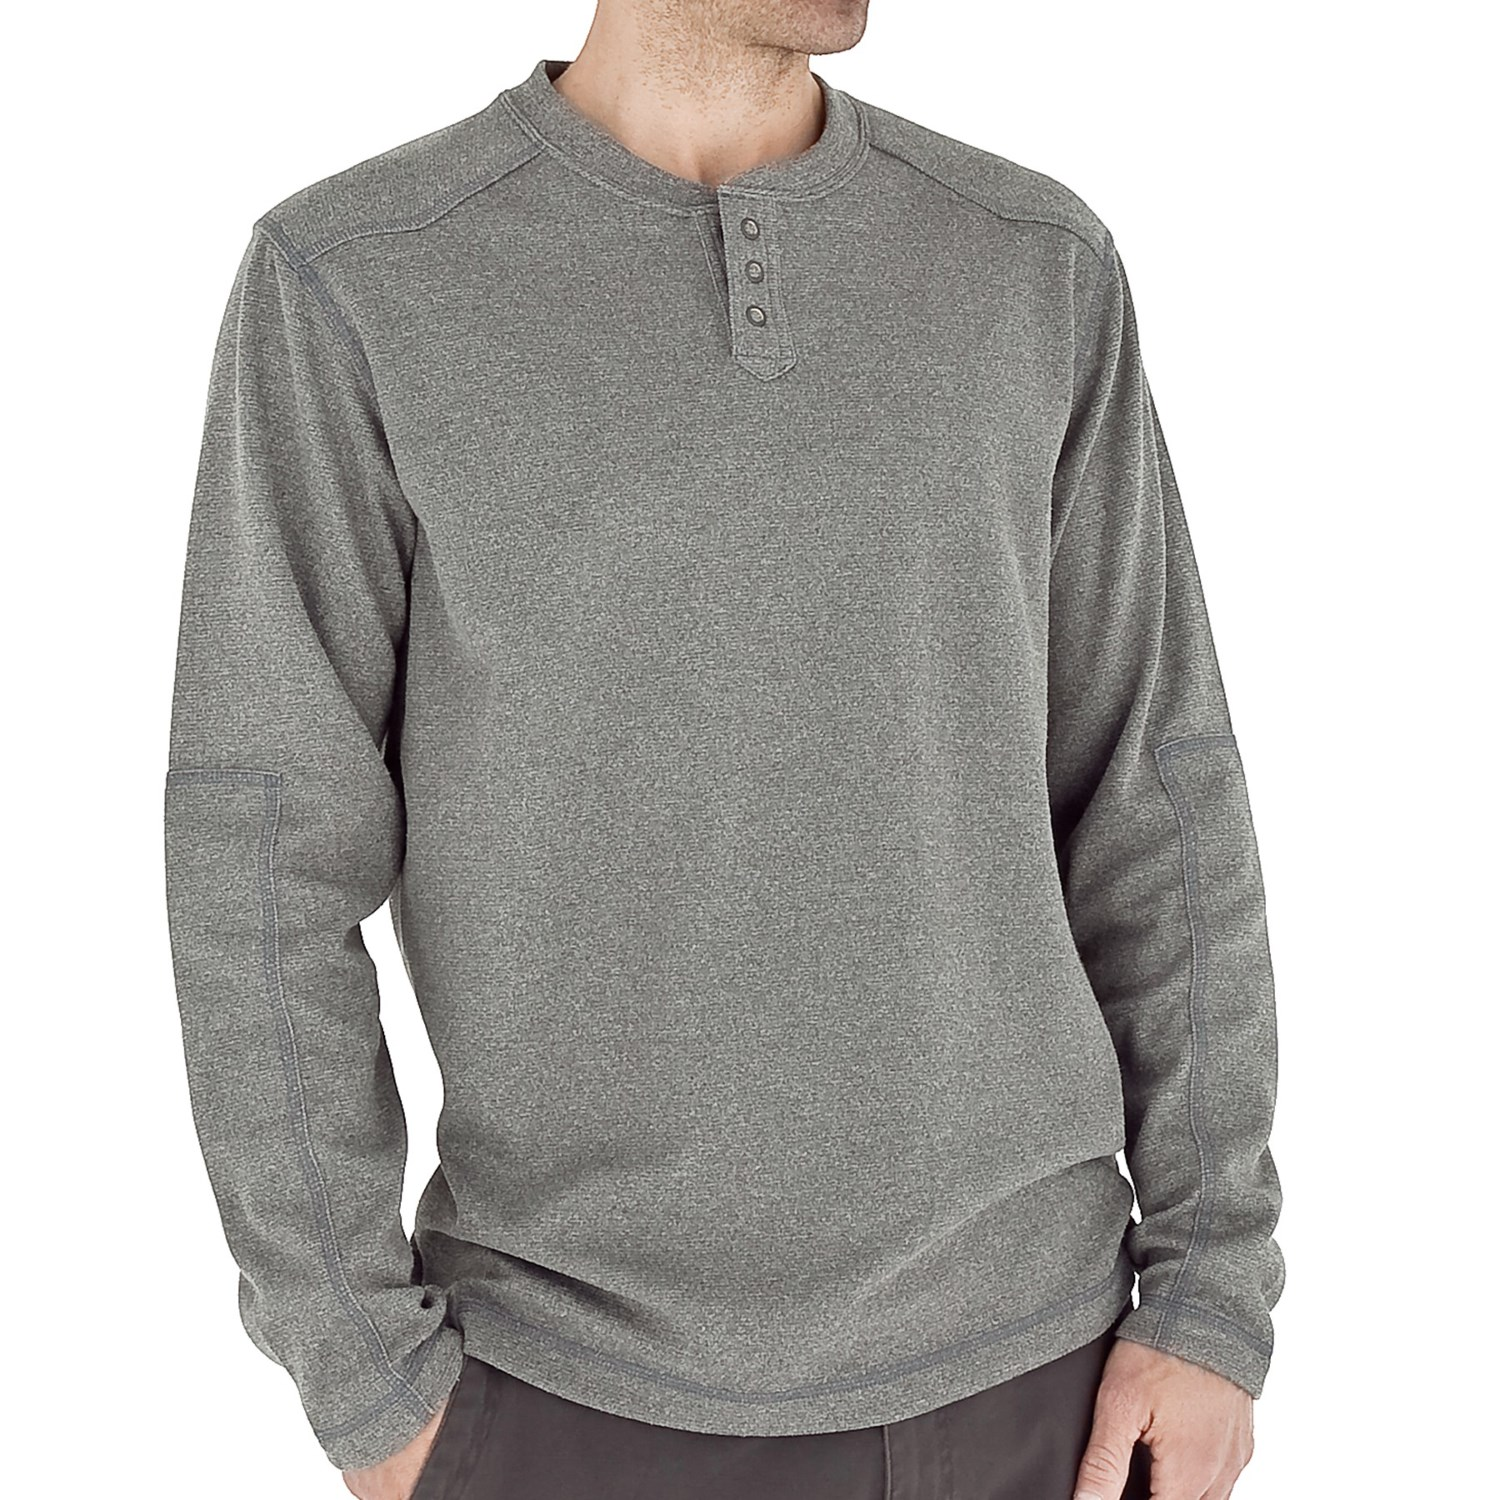 Royal robbins alpine thermal henley shirt upf 50 long for Men s thermal henley long sleeve shirts